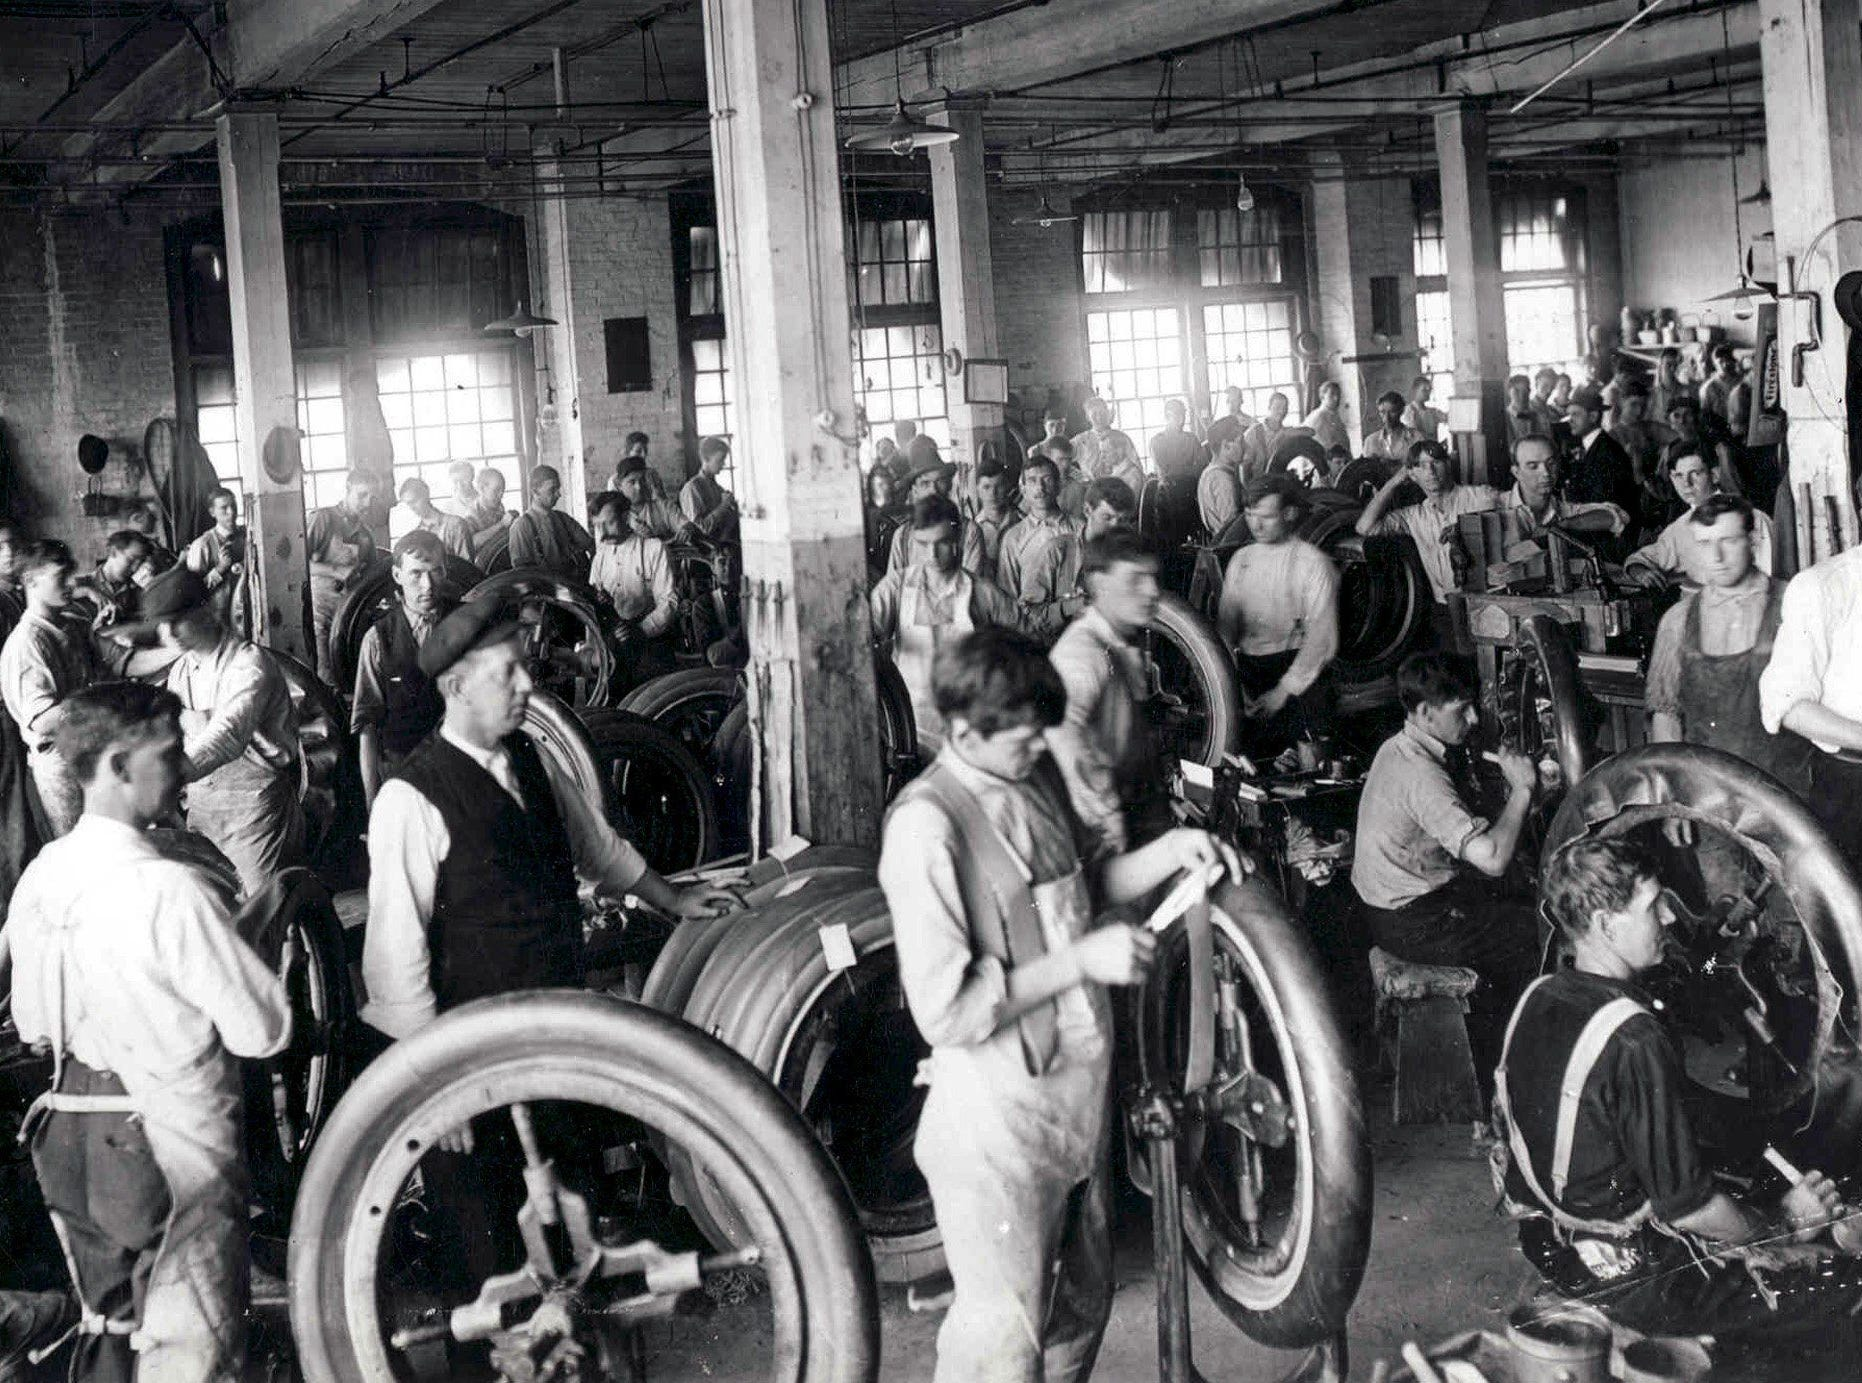 Firestone Tire and Rubber Company  built its first tire in Memphis on 19 Jan 1937 and it is estimated that when the plant closed in March 1983, that 194,849,625 tires had been built by the workers at the plant on Firestone Avenue in North Memphis.  This undated early photo shows workers making tires.  The last tire built at the plant was on 11 March 1983.  The plant's highest peace-time employment reach 3,000 in 1976.  The plant consisted of 1.4 million square feet on 85 acres when it was sold for $1.8 million in August 1983.  Photo Courtesy Memphis & Shelby County Public Library & Information Center.